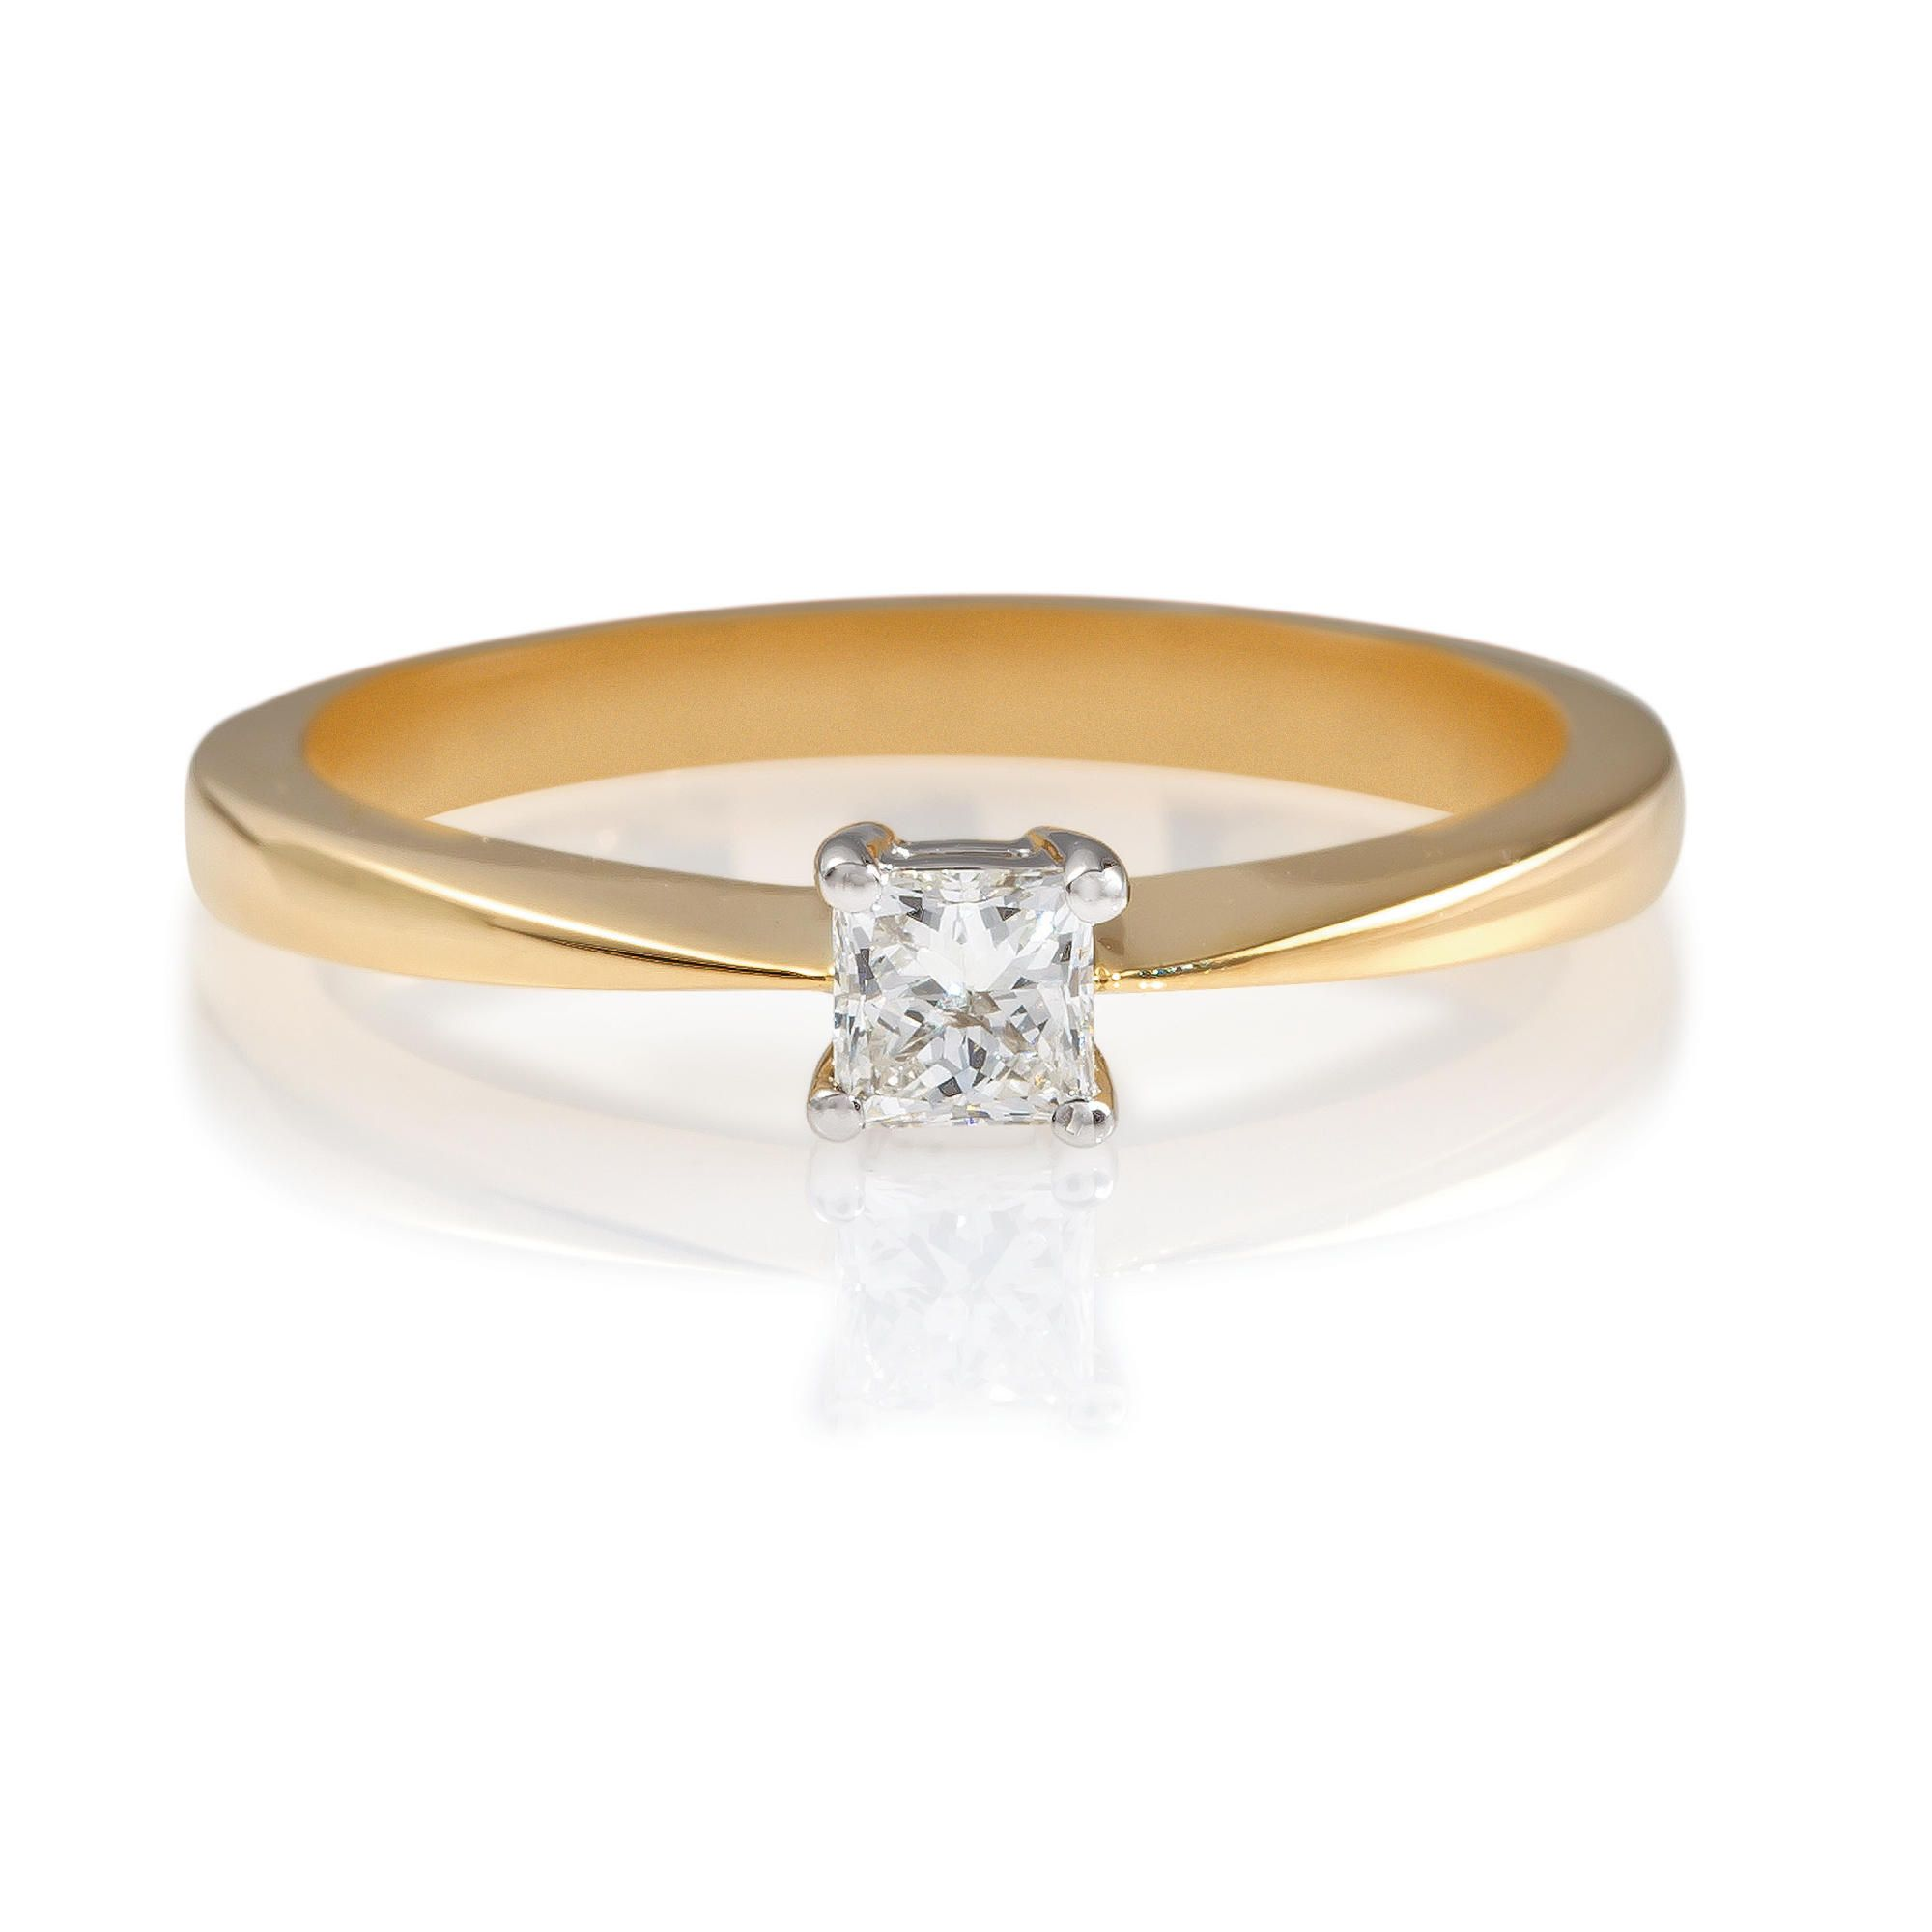 18ct Gold 1/4ct Diamond Princess Cut Ring, N at Tesco Direct